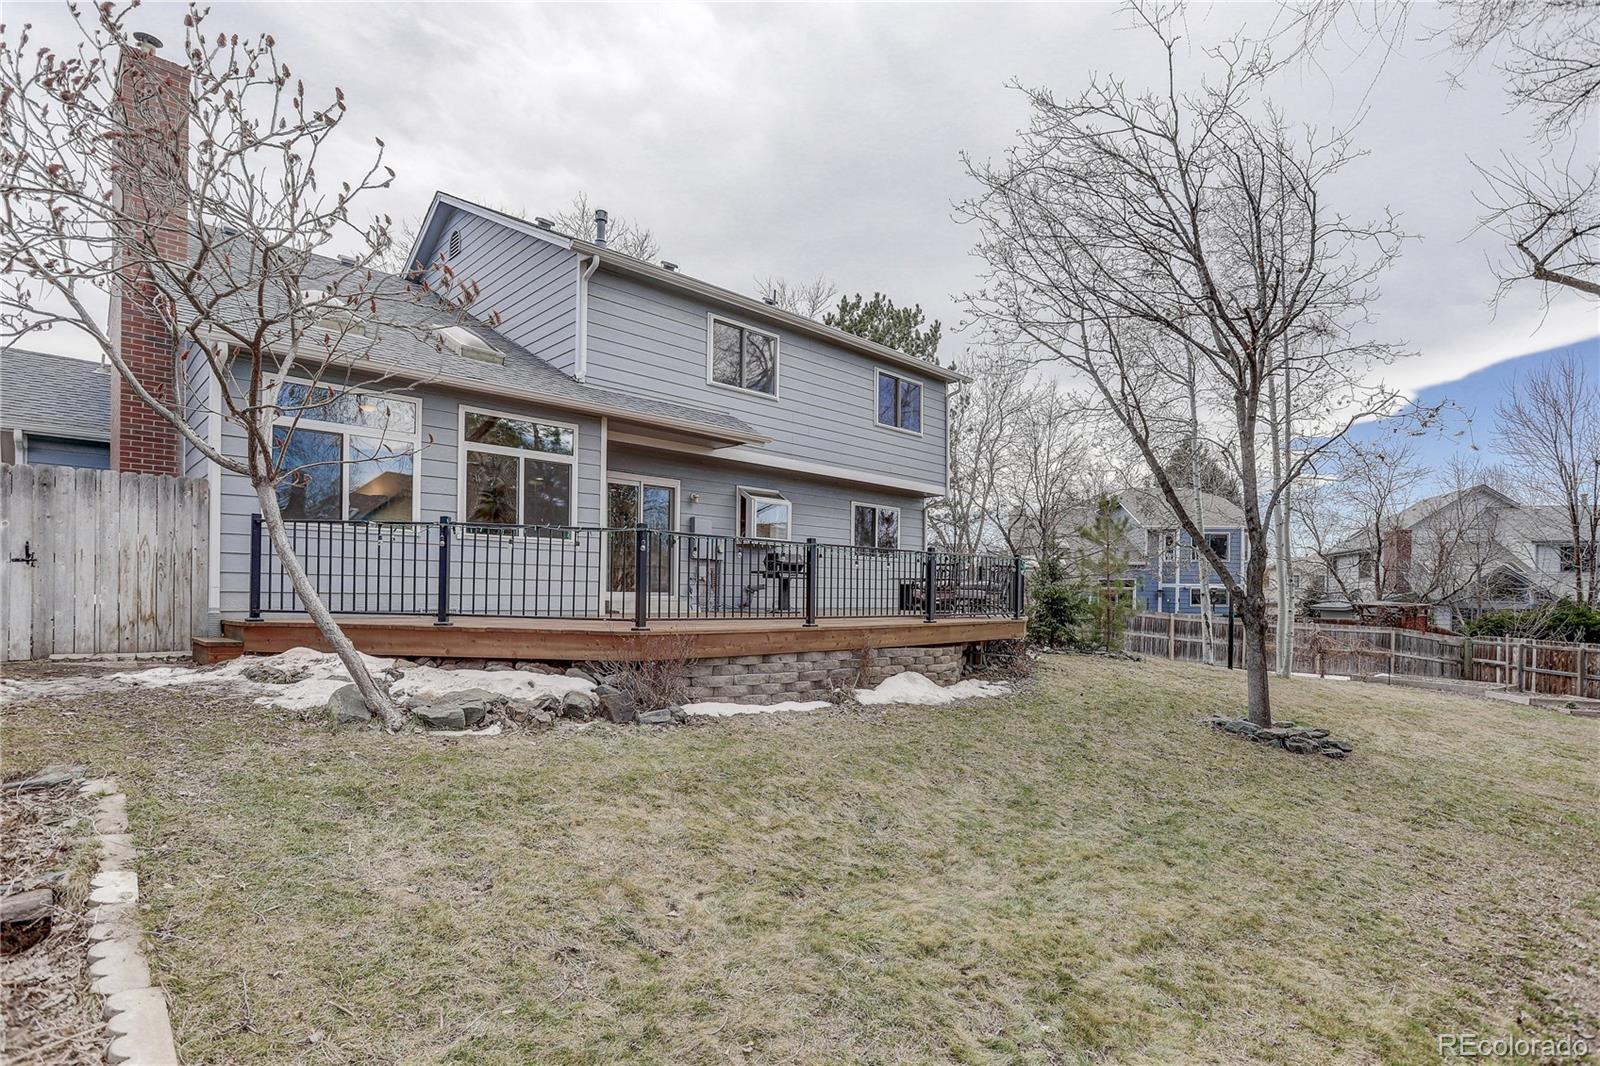 MLS# 2258338 - 3861 W 98th Place, Westminster, CO 80031